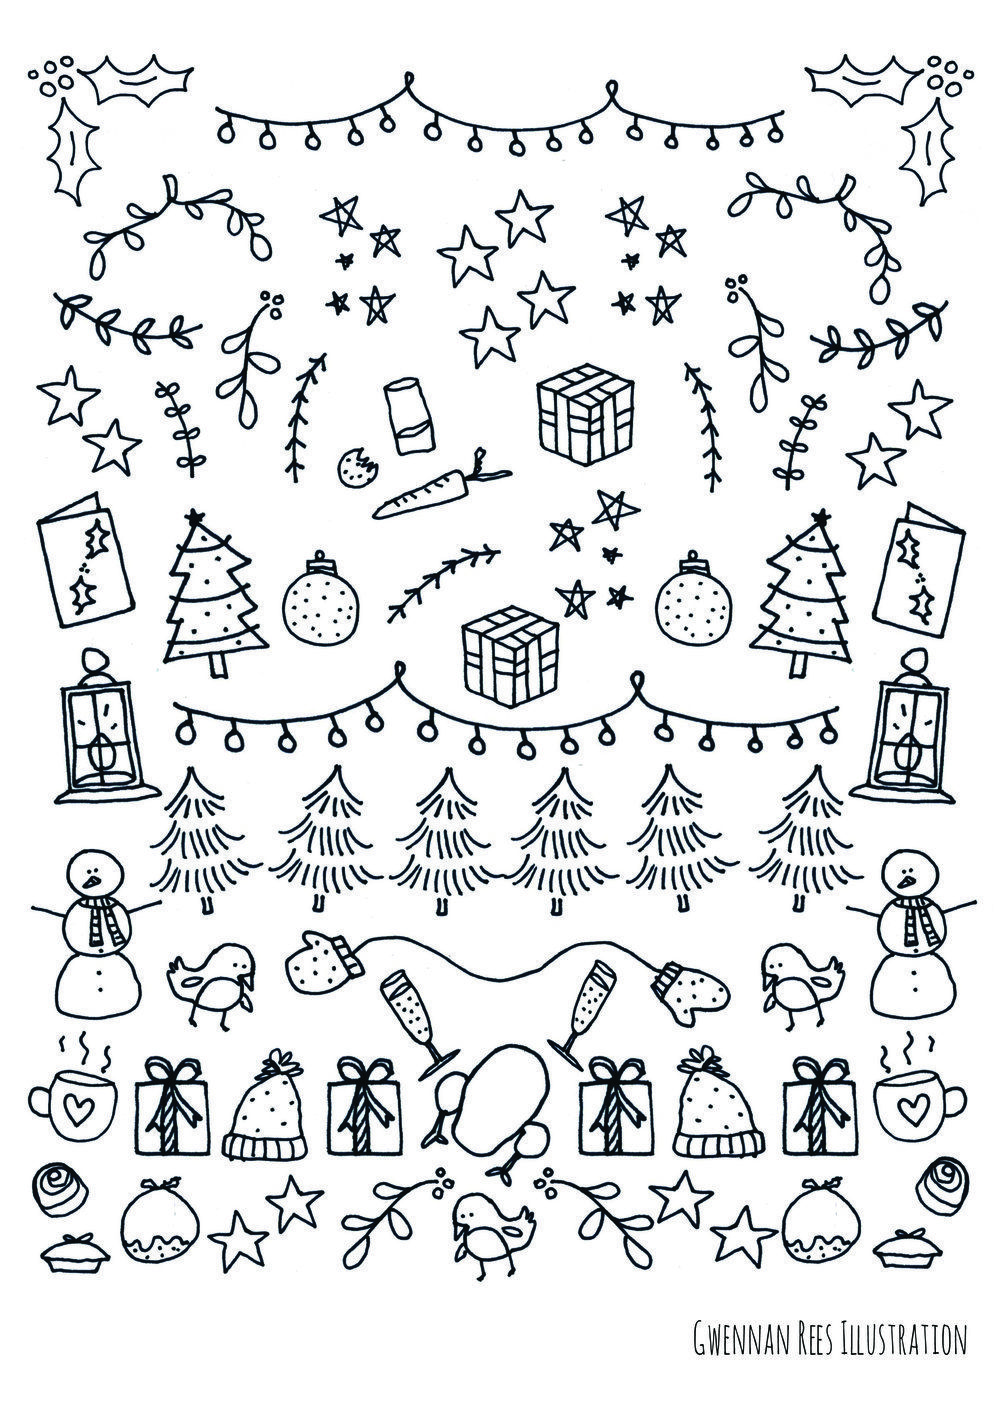 photograph relating to Doodle Art Printable named Kumpulan Xmas Doodle Artwork Printable Doodlegaleri